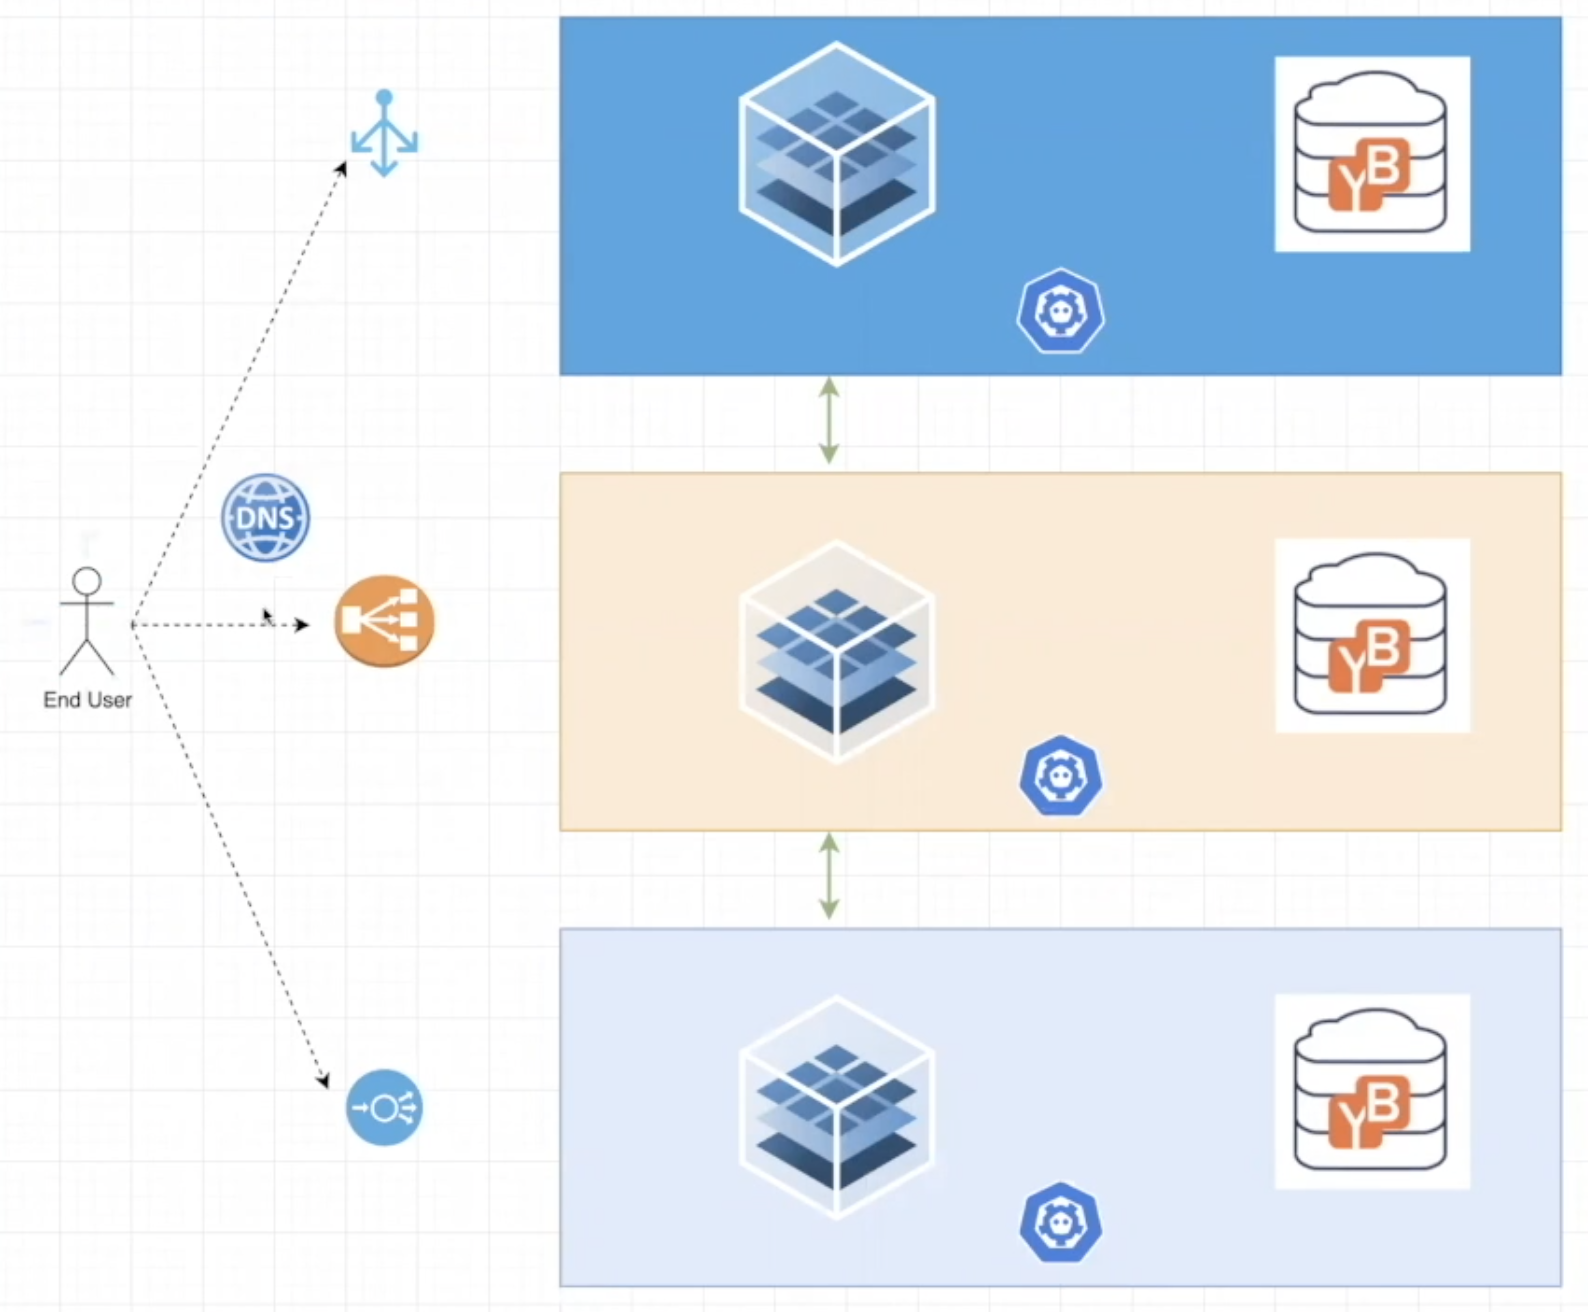 Architecting the Solution with DNS Resolver Image